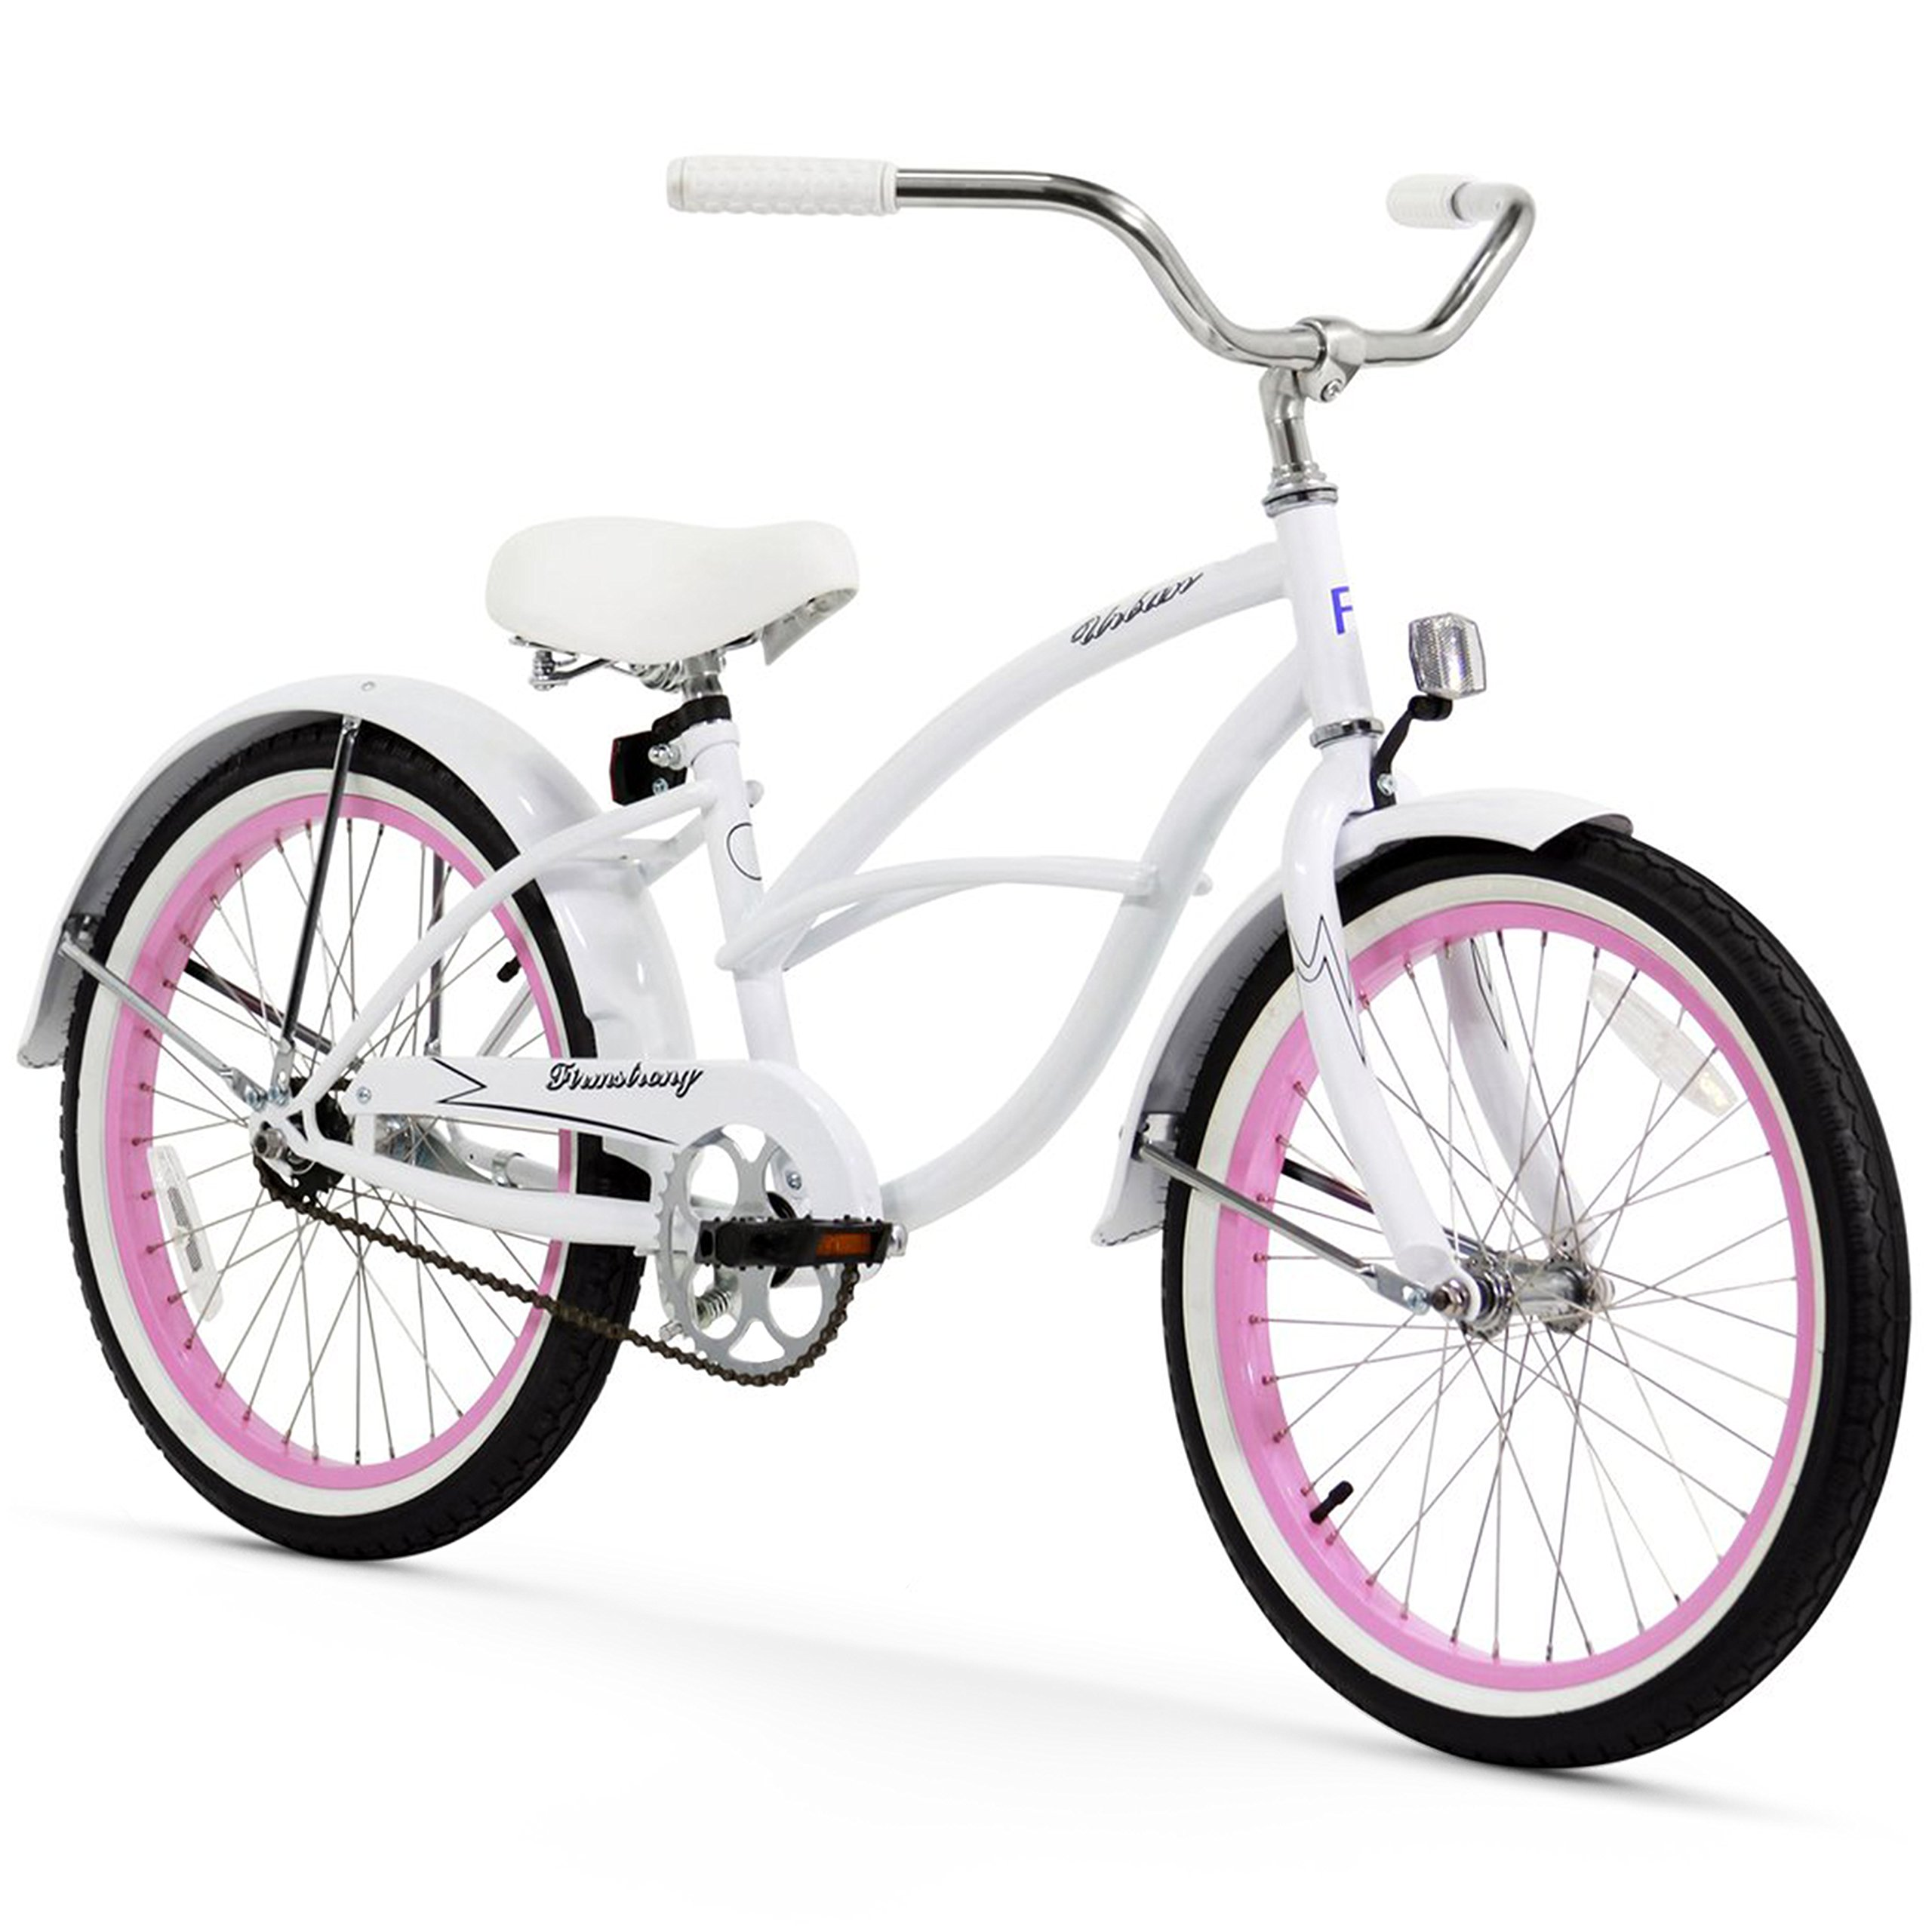 Firmstrong Urban Girl Single Speed Beach Cruiser Bicycle, 20-Inch, White w/ Pink Rims by Firmstrong